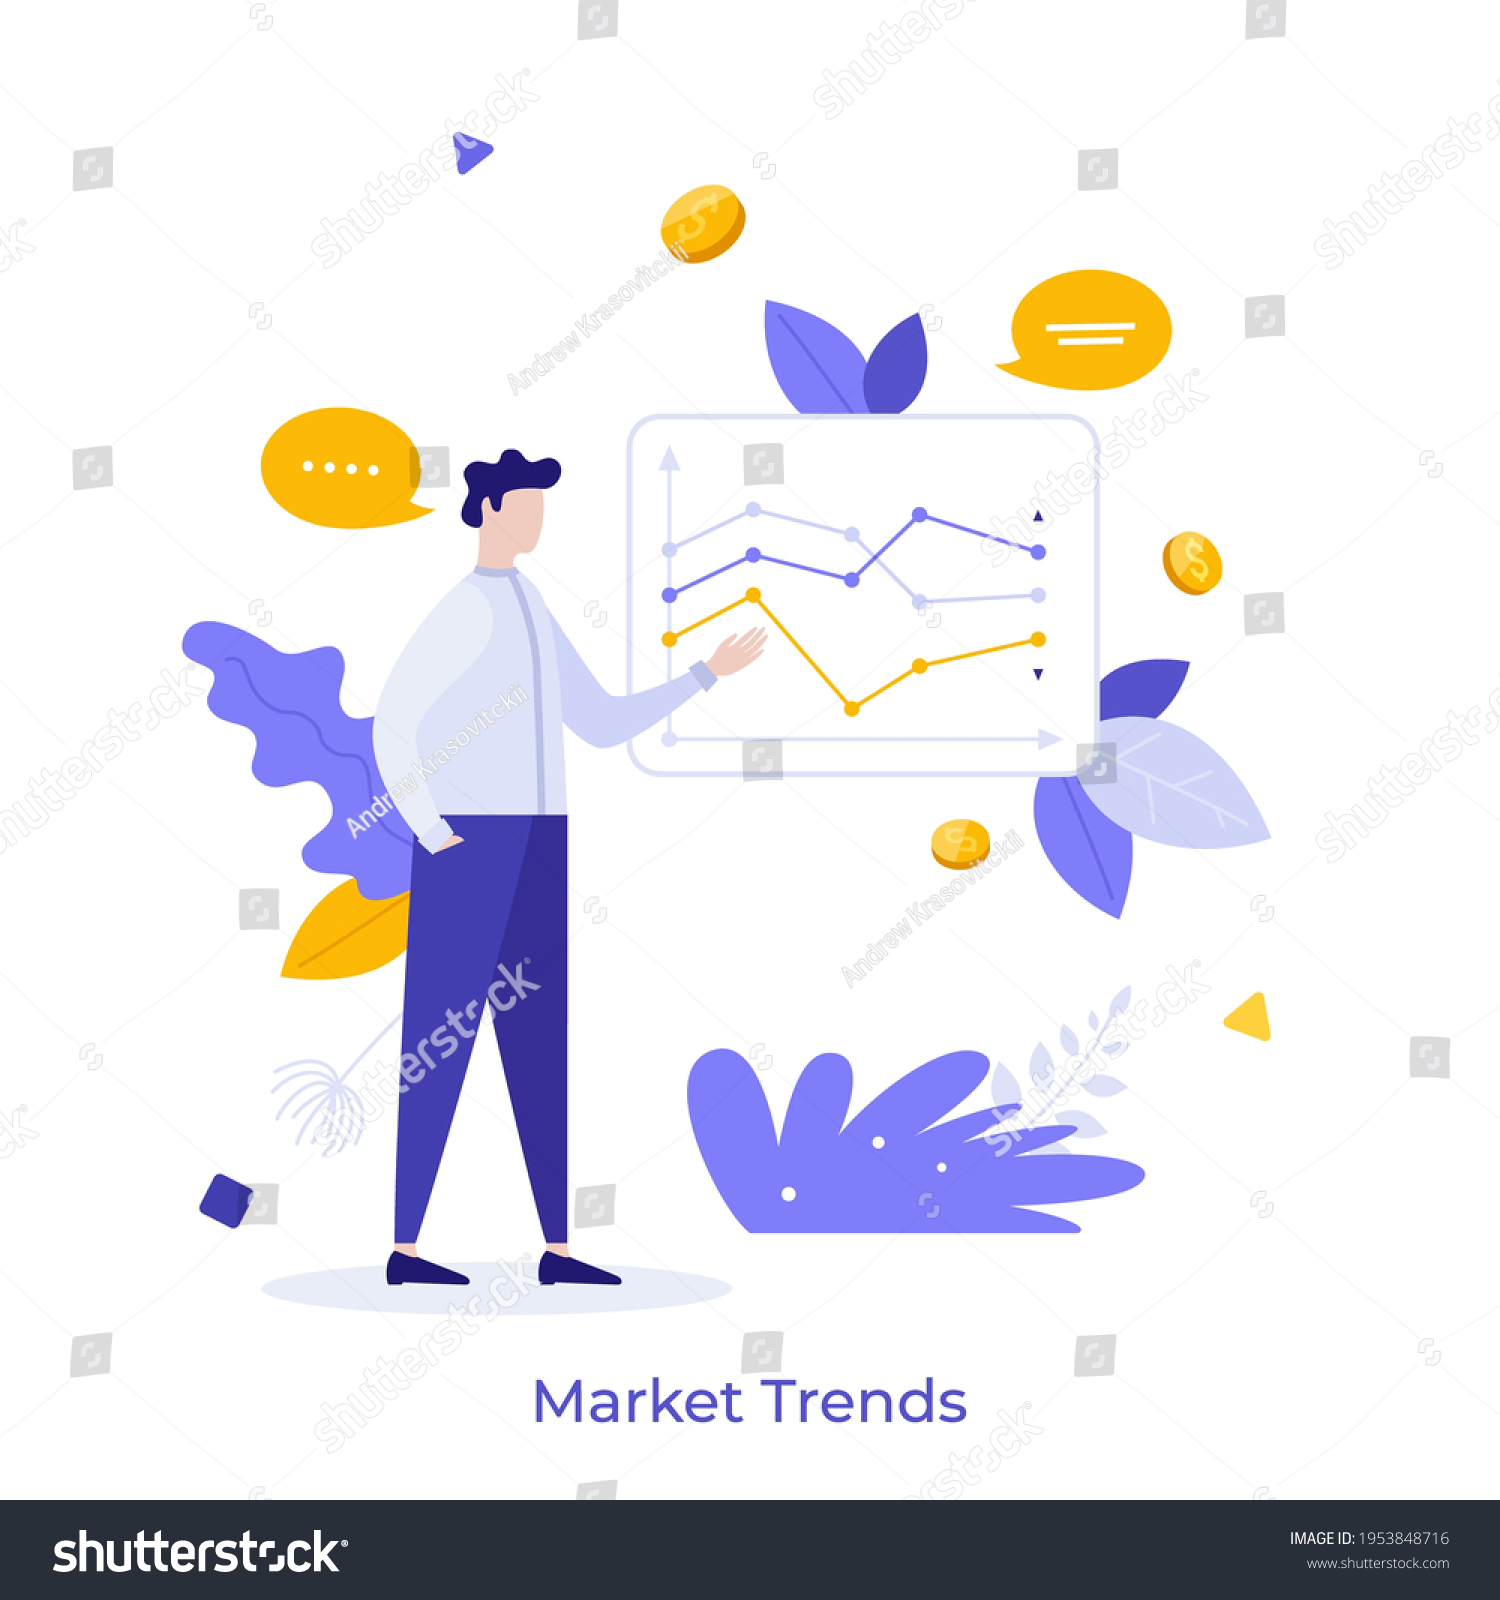 Stockbroker demonstrating and analyzing stock exchange charts. Concept of market trends analysis and research, investment strategy, IPO. Modern flat colorful vector illustration for poster, banner. #1953848716